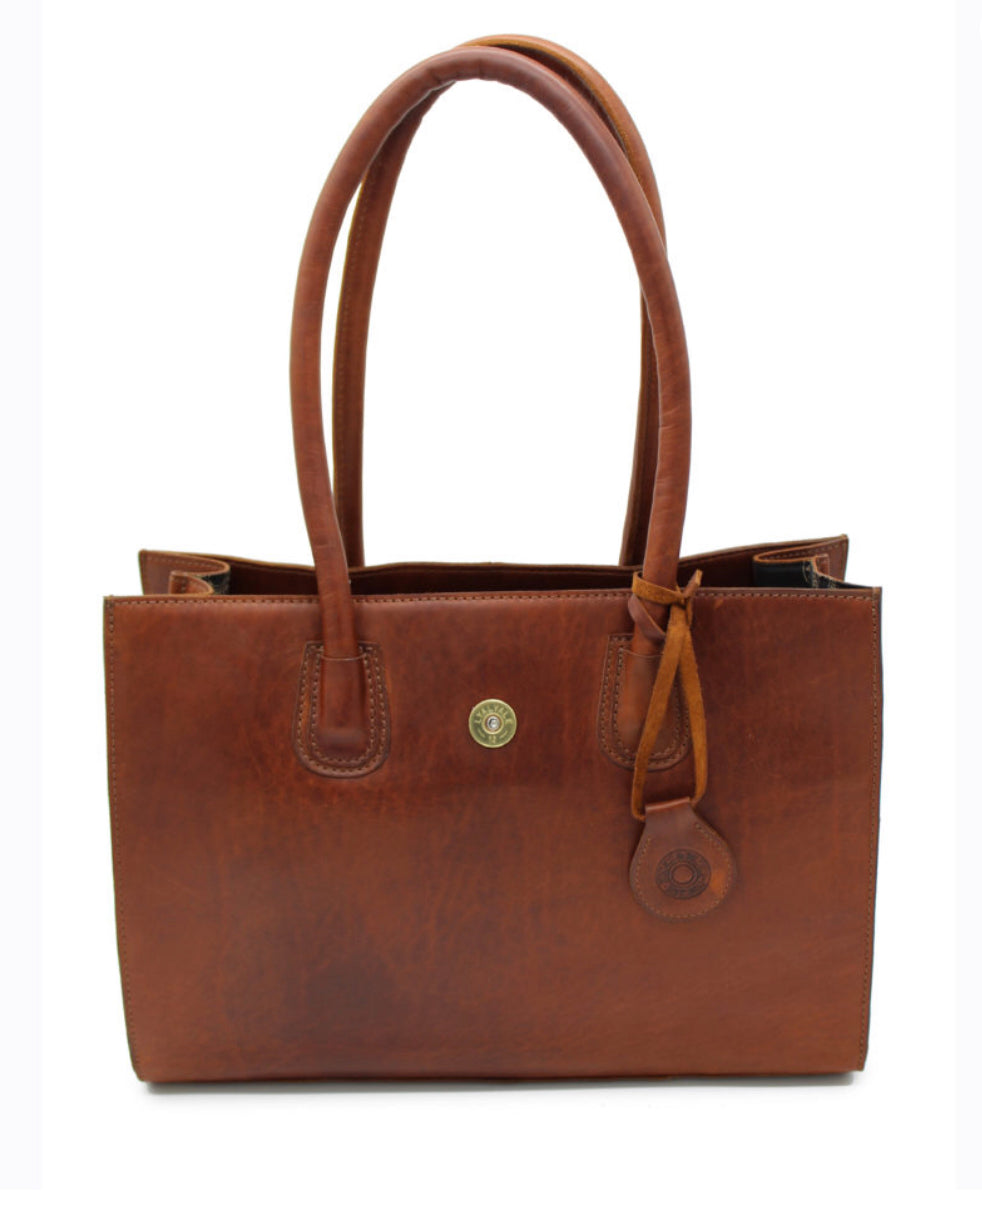 Chedworth Cartridge Handbag In Cognac